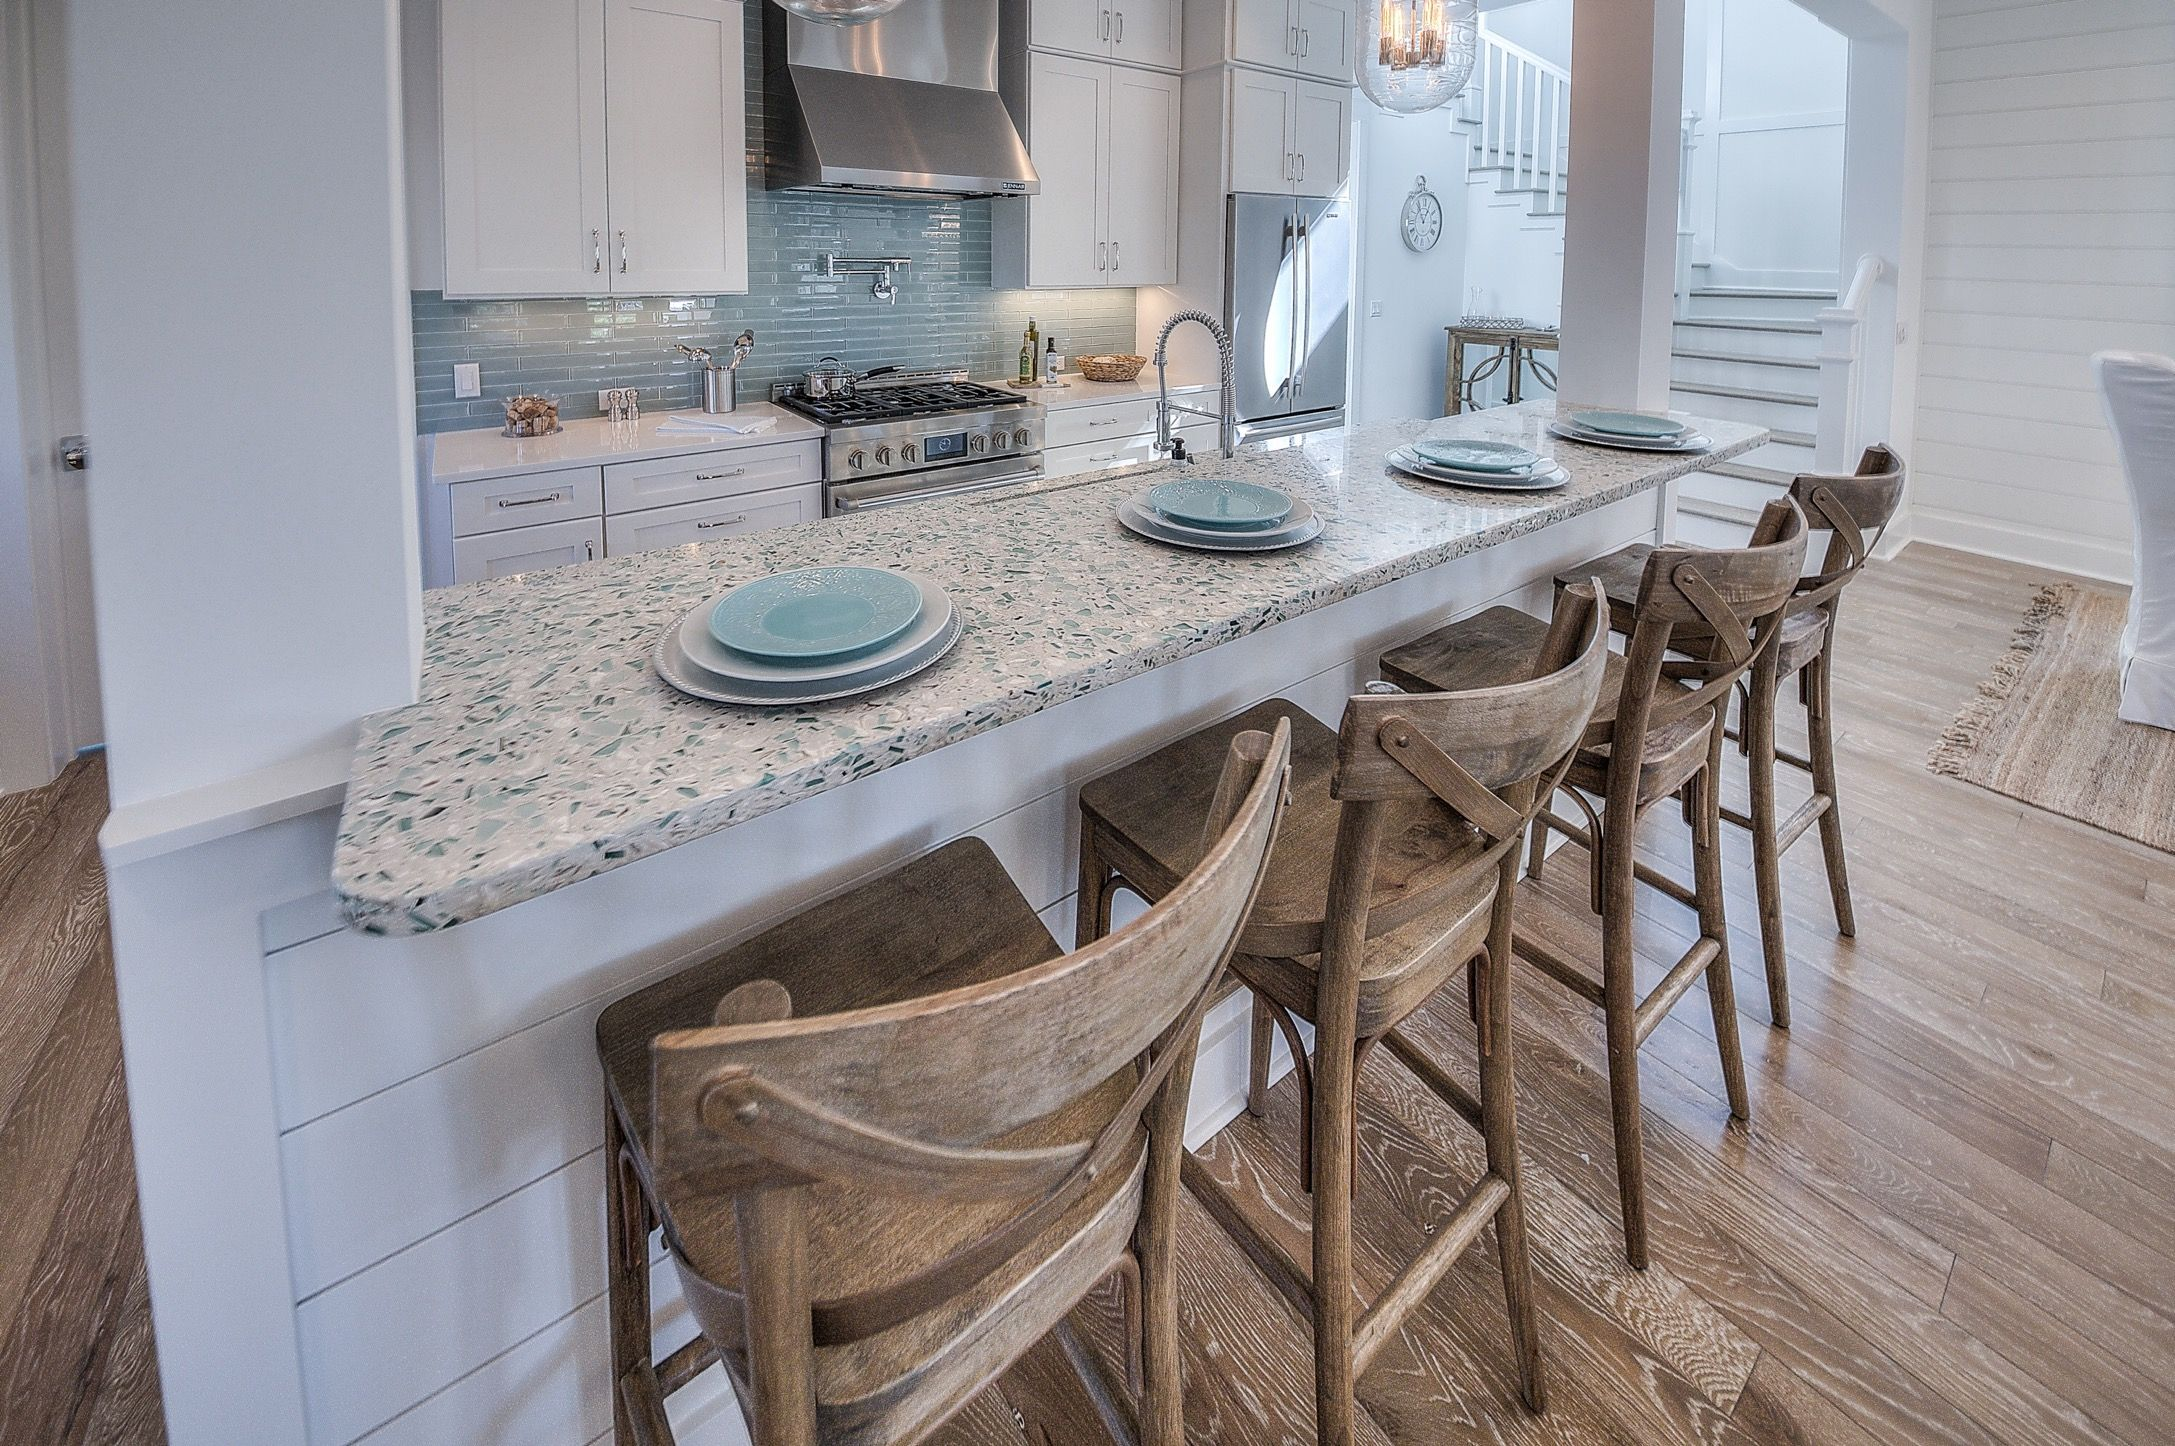 Attractive Breakfast Bar And Rustic Bar Stools